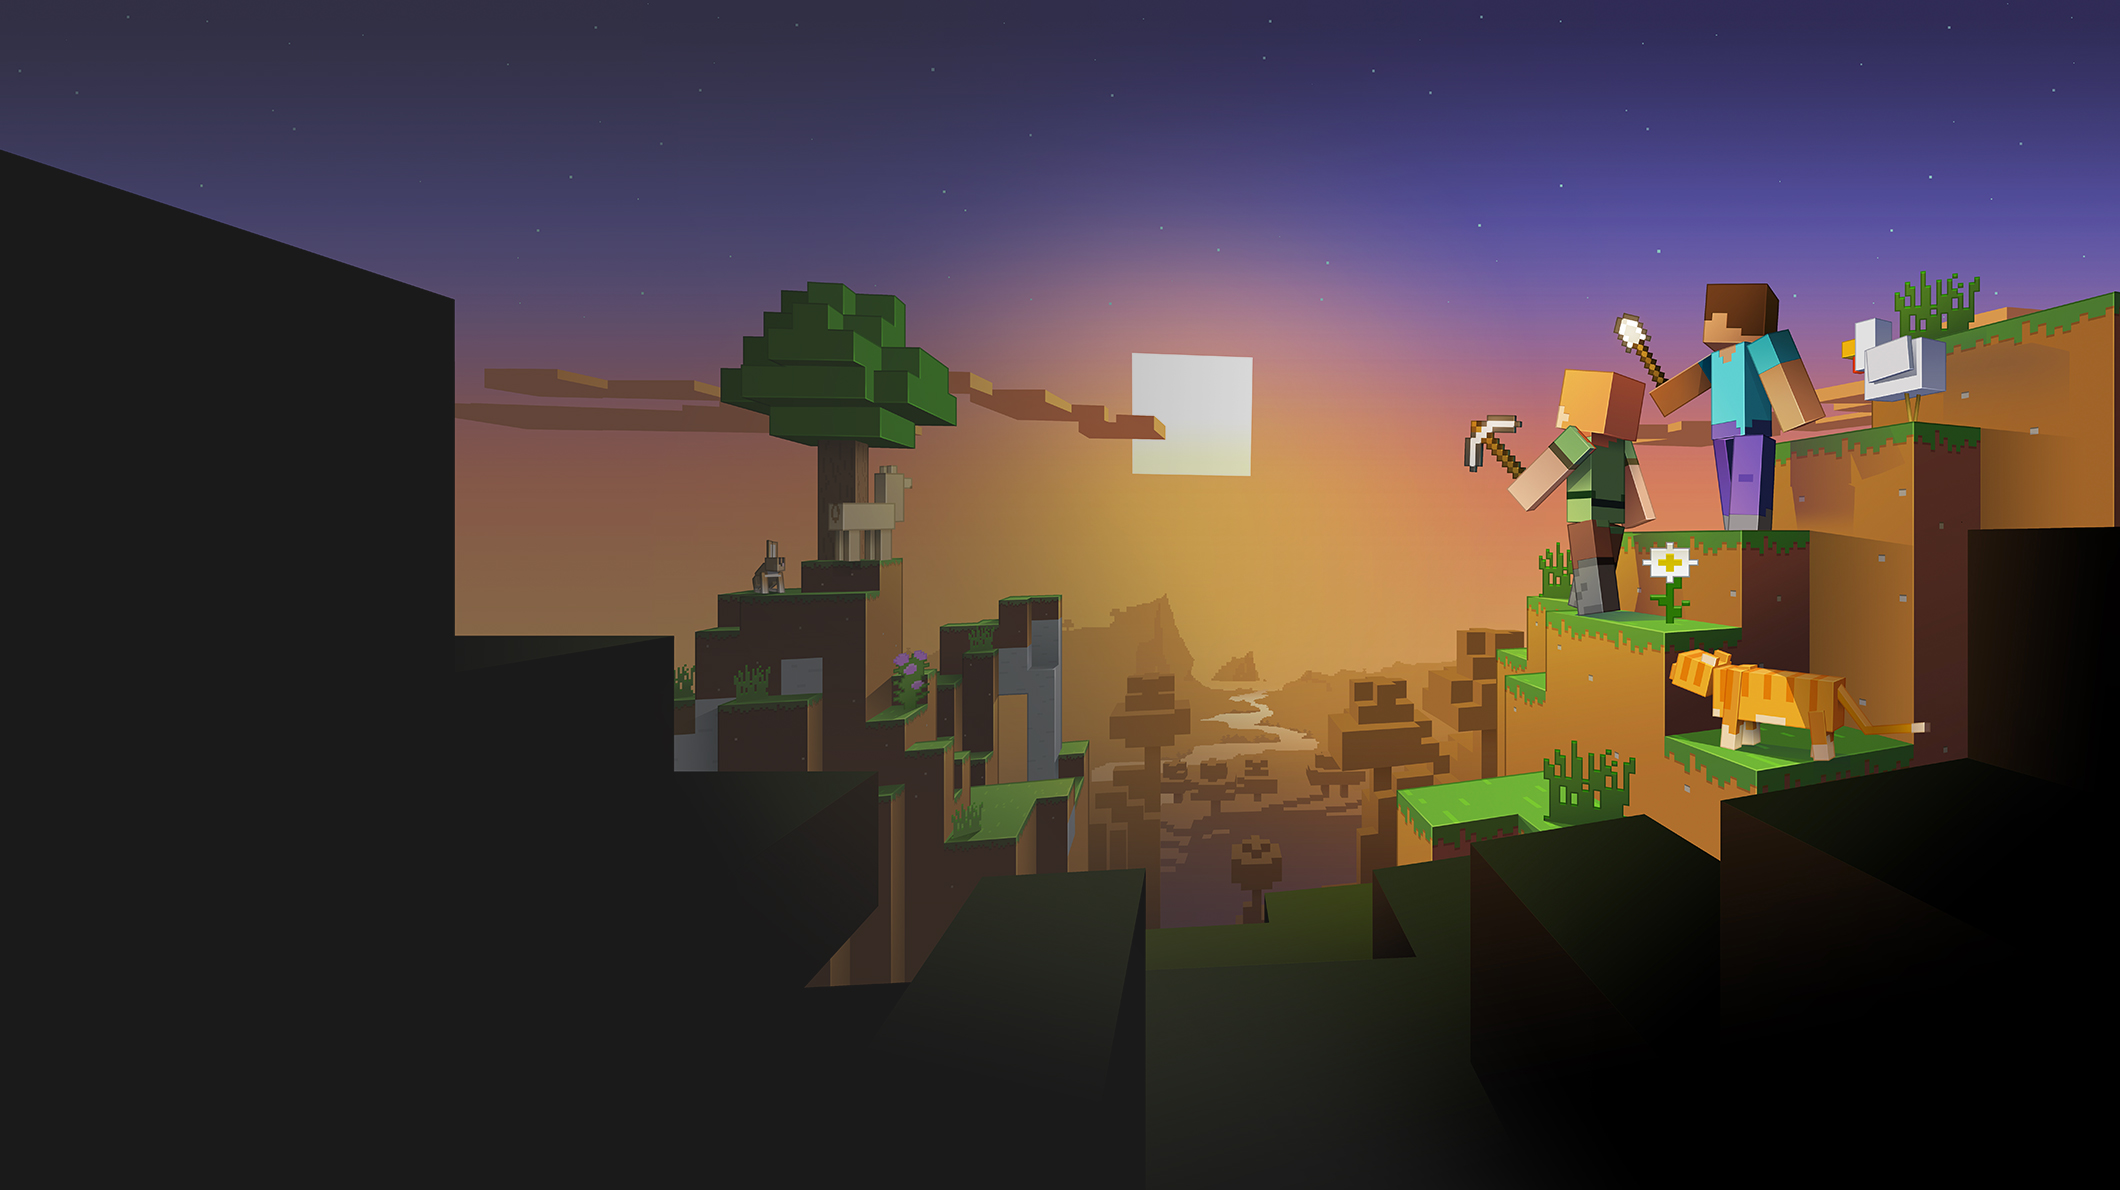 Characters in a Minecraft landscape